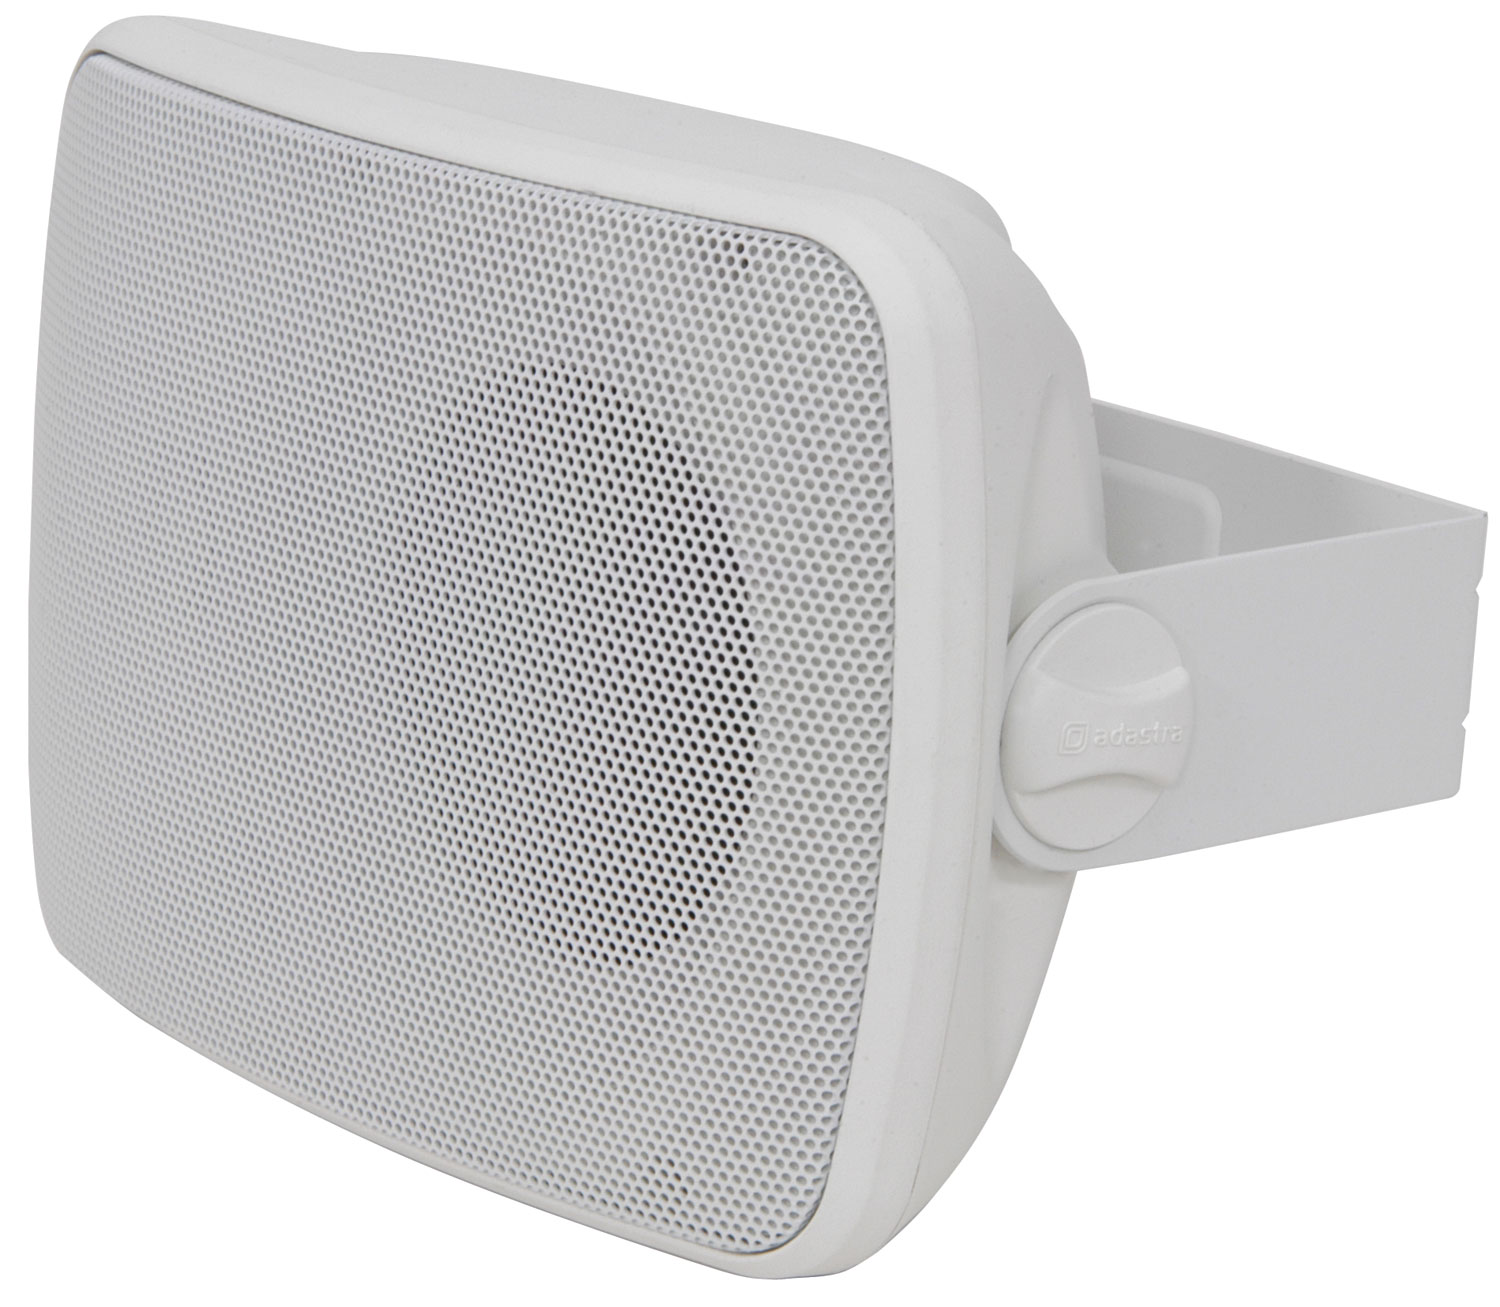 952962 FC4V-W 100V 4in Speaker White